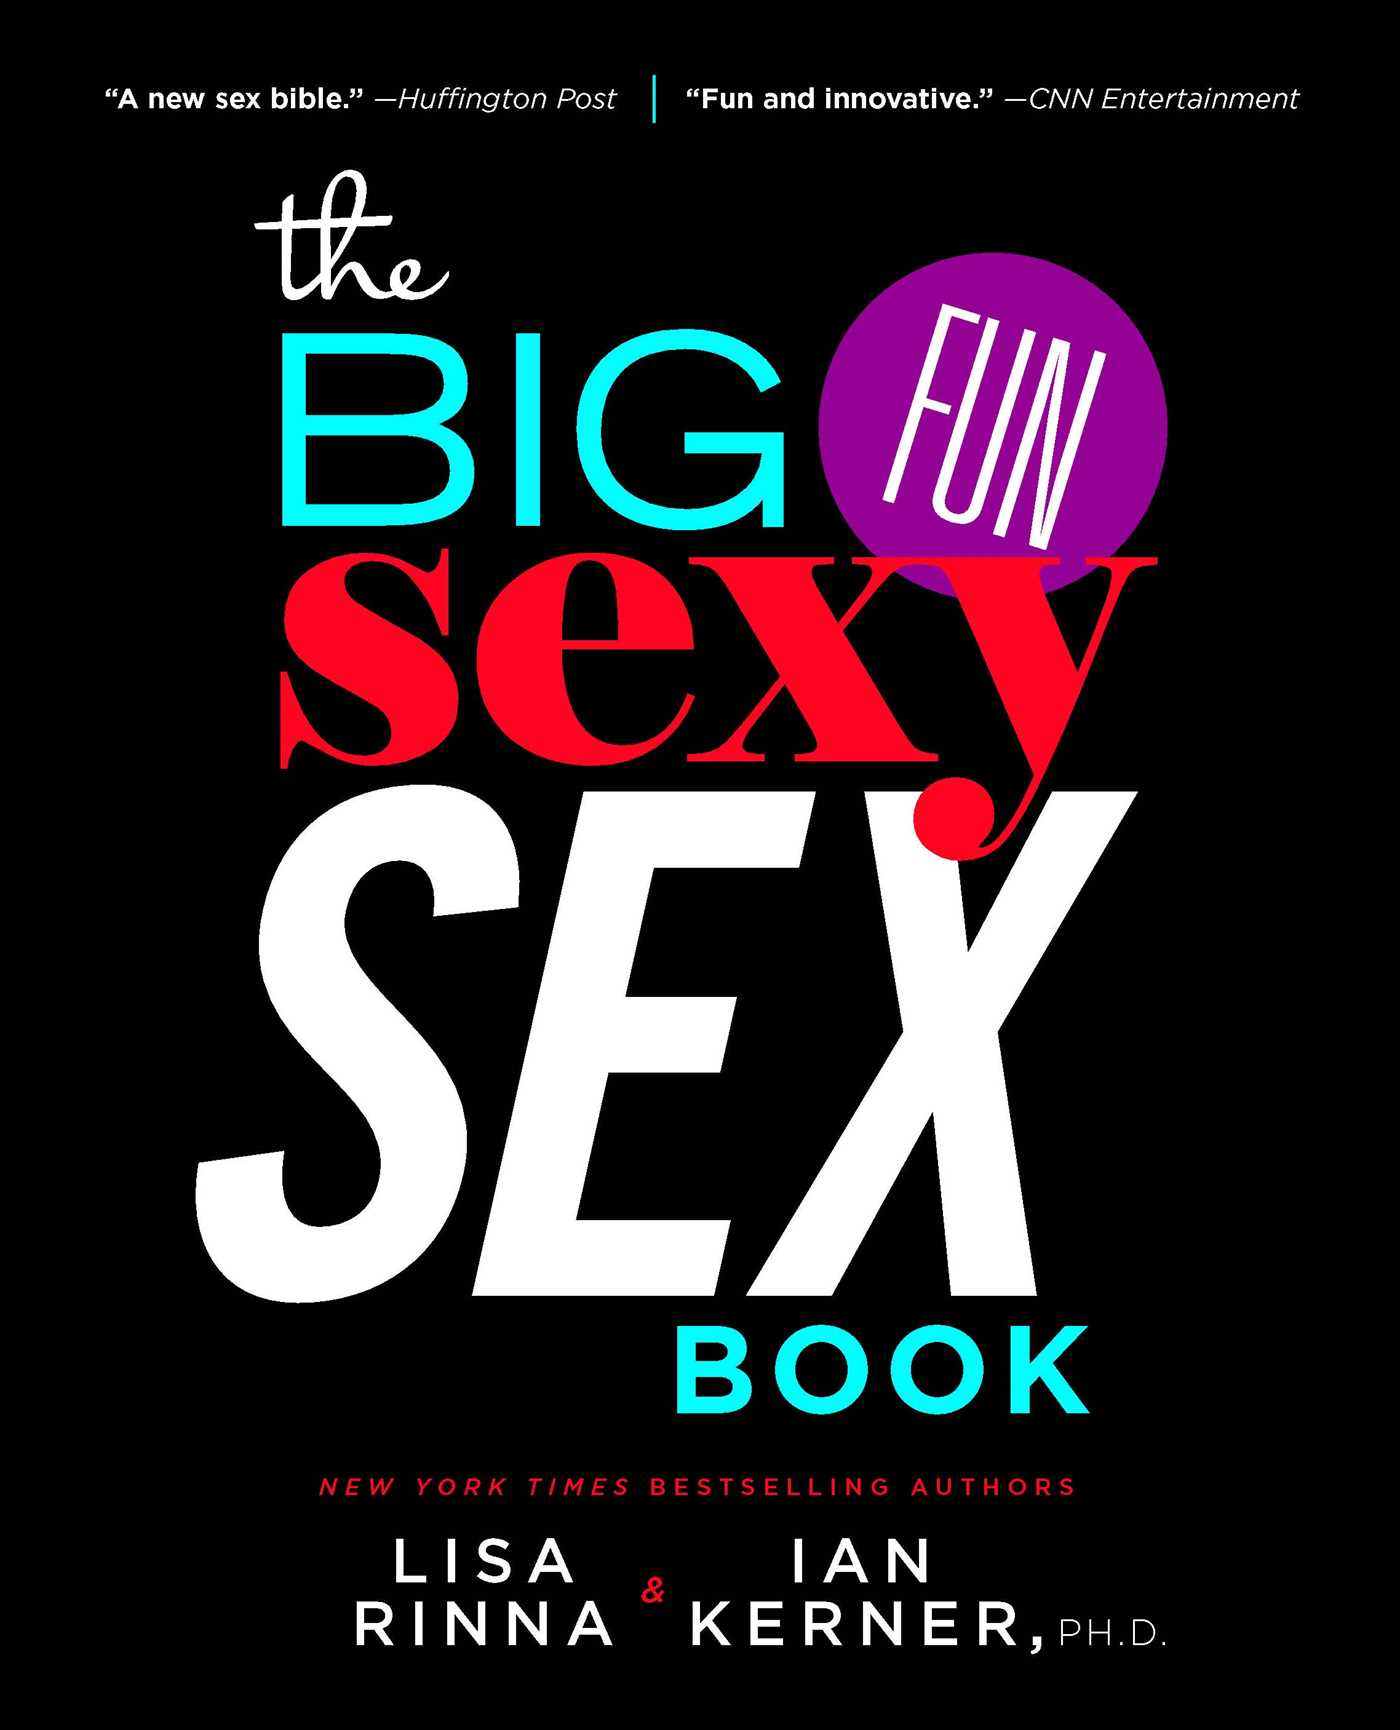 The big fun sexy sex book 9781451661248 hr